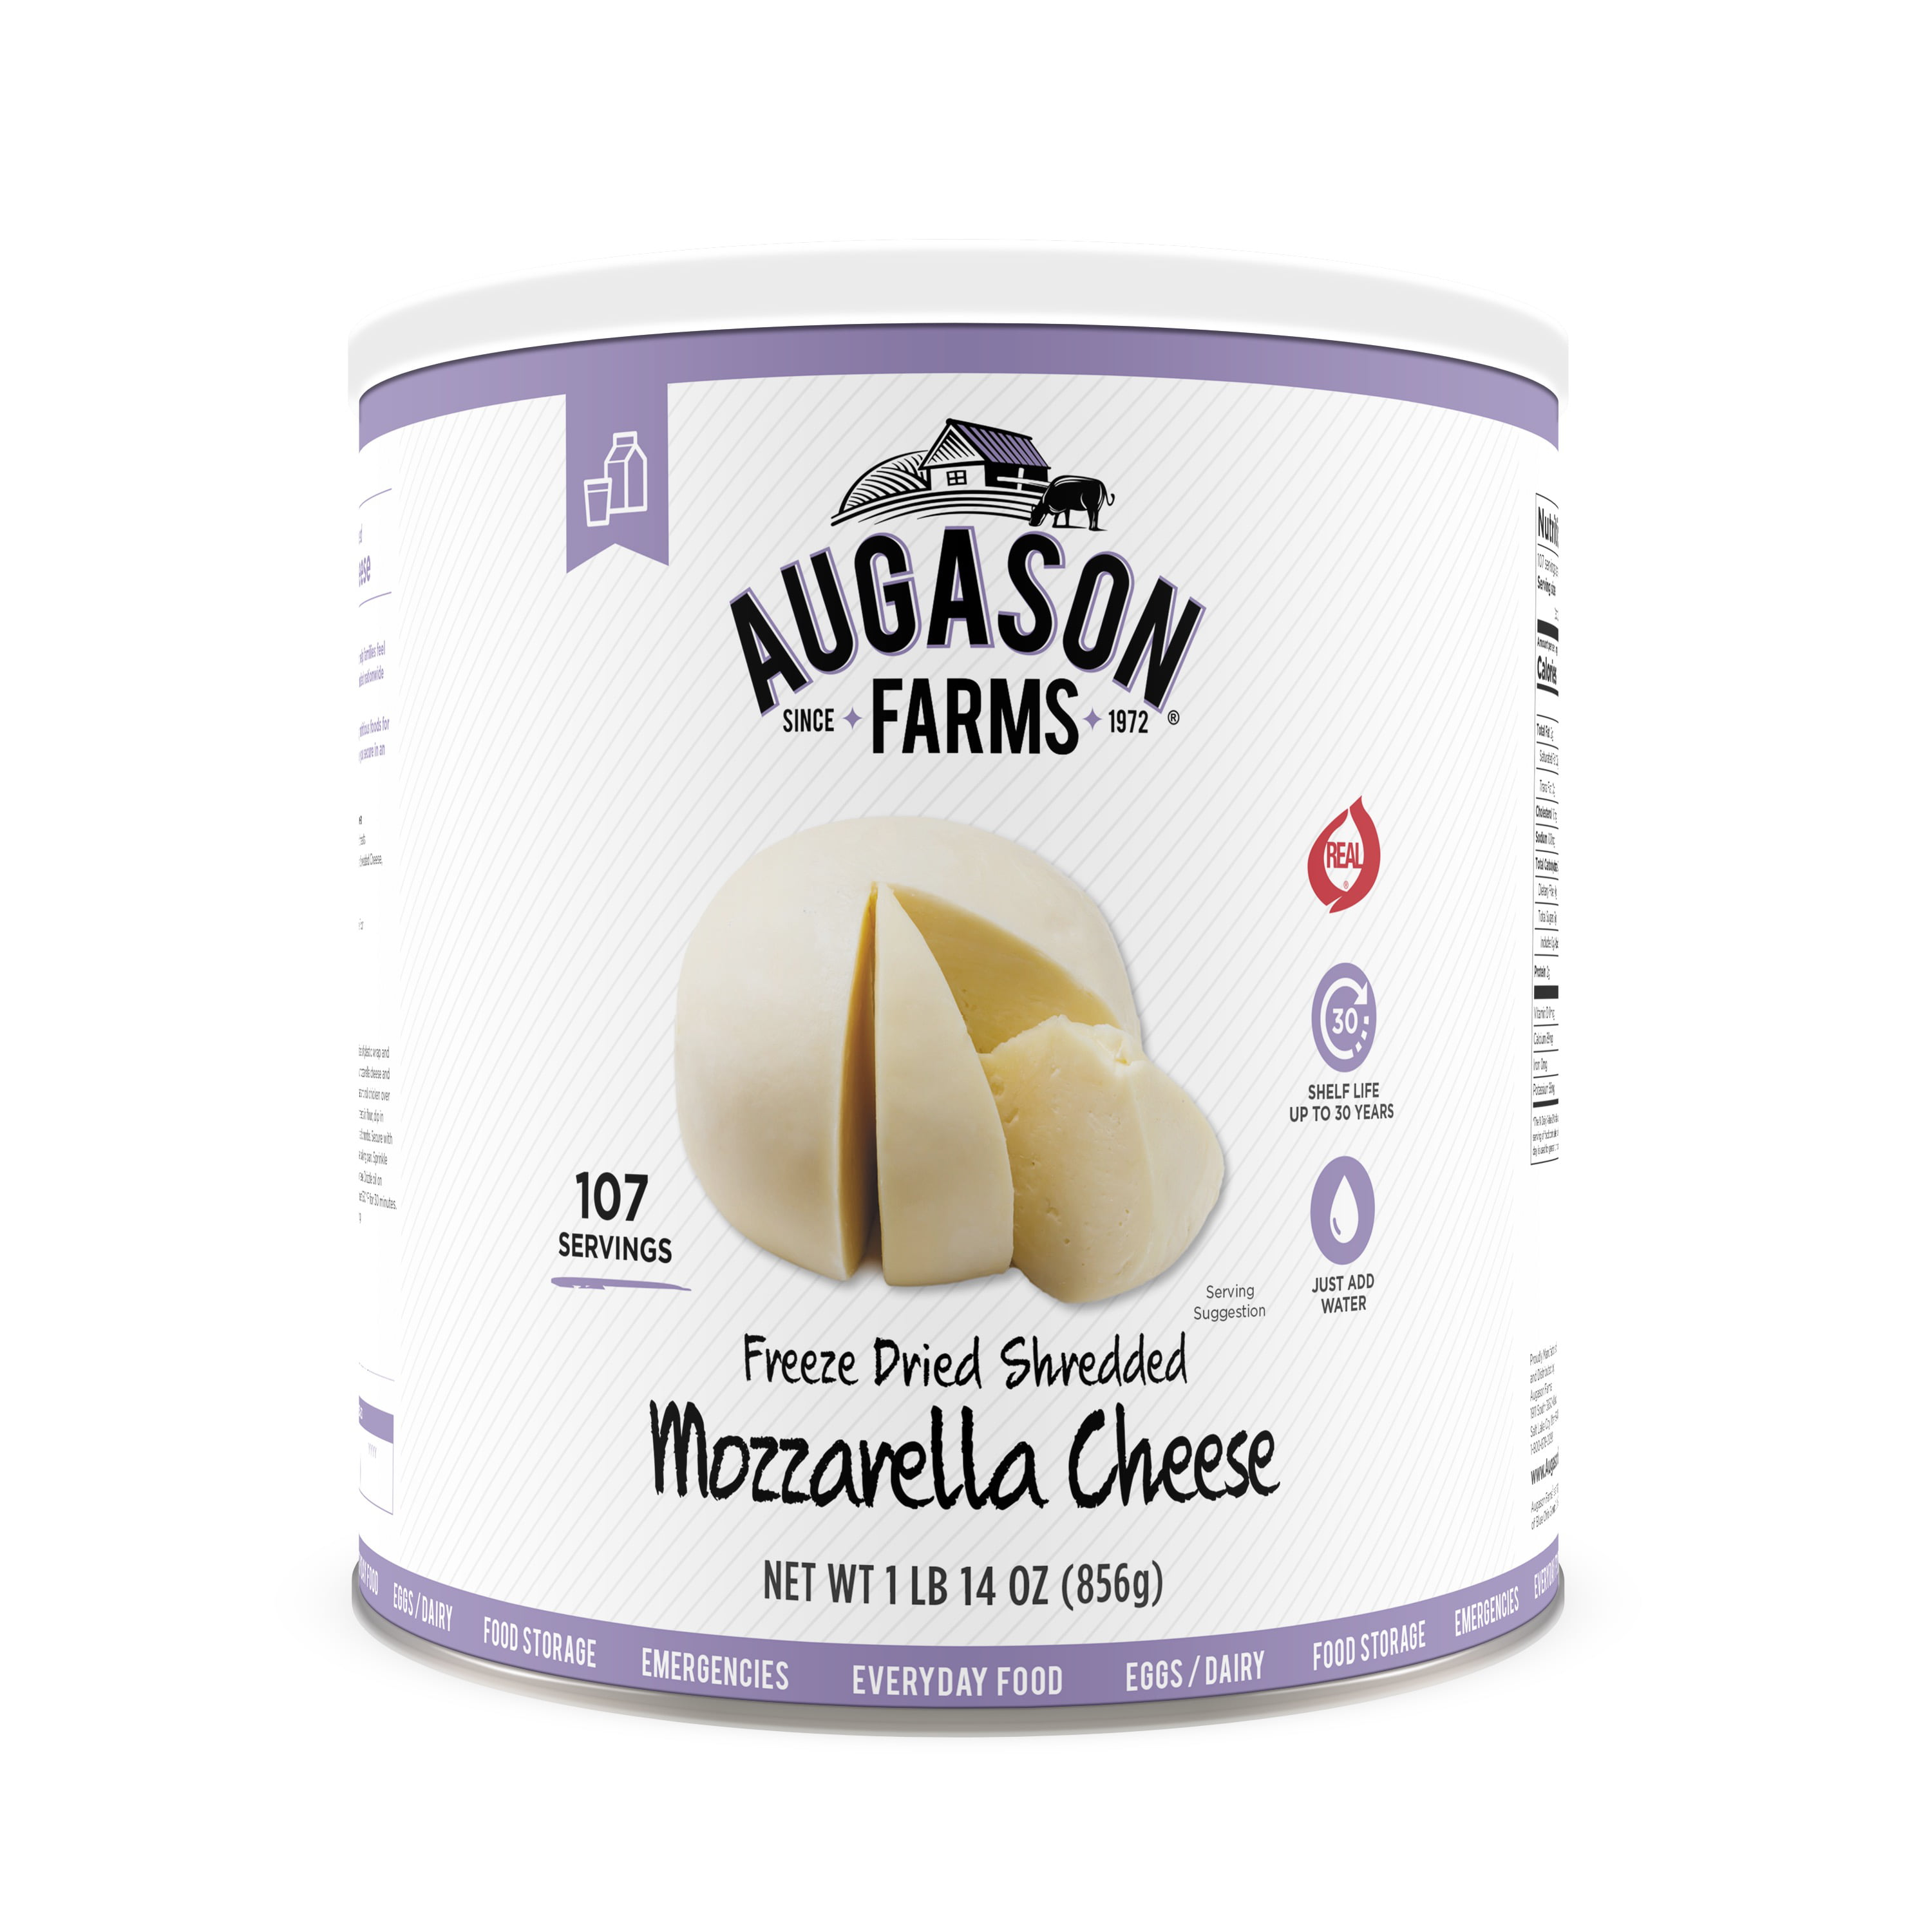 Augason Farms Freeze Dried Shredded Mozzarella Cheese 1 lb 14 oz No. 10 Can by Blue Chip Group